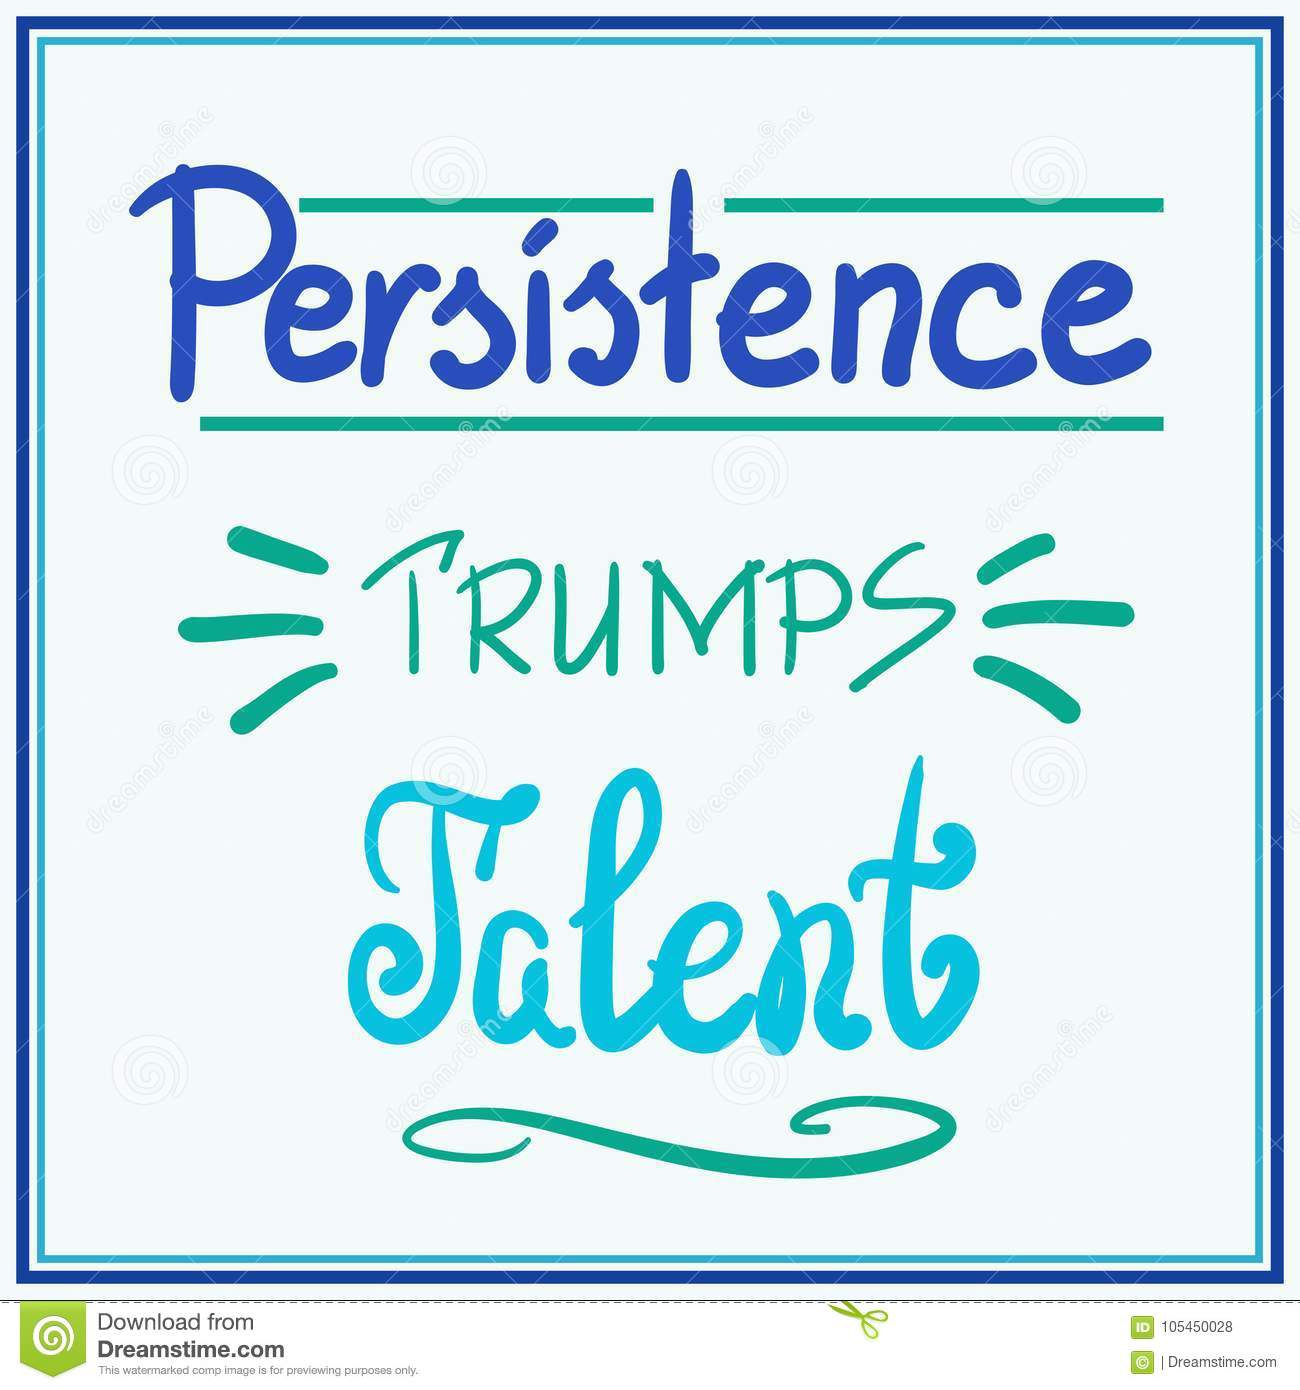 Persistence Motivational Quotes Cartoon: Persistence Stock Illustrations